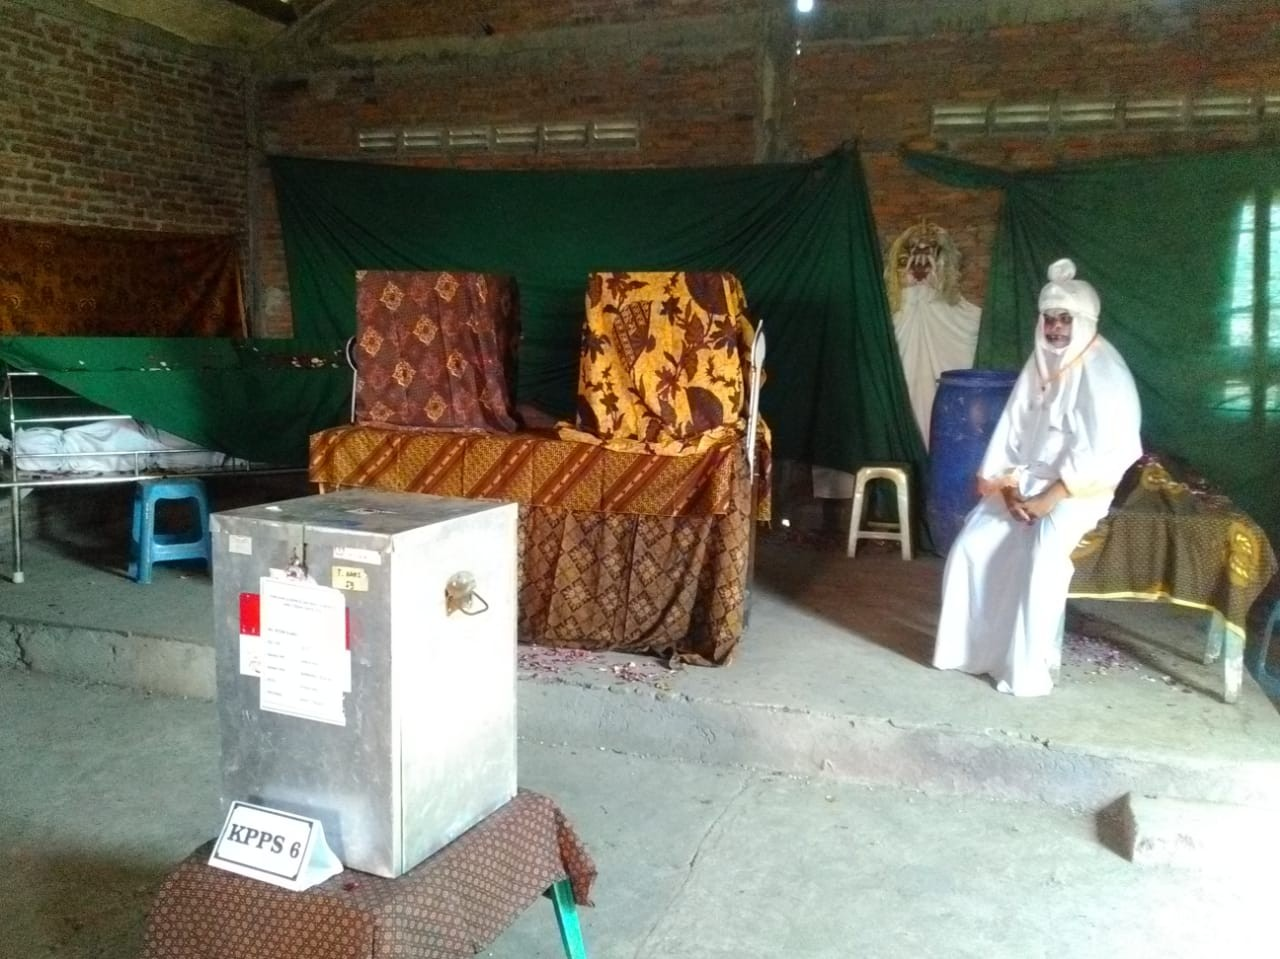 A polling station official is dressed as a ghost at Randusari polling station in Semarang, Central Java, on Wednesday, June 27, 2018. The station is located in the middle of Bergota cemetery. JP/Suherdjoko